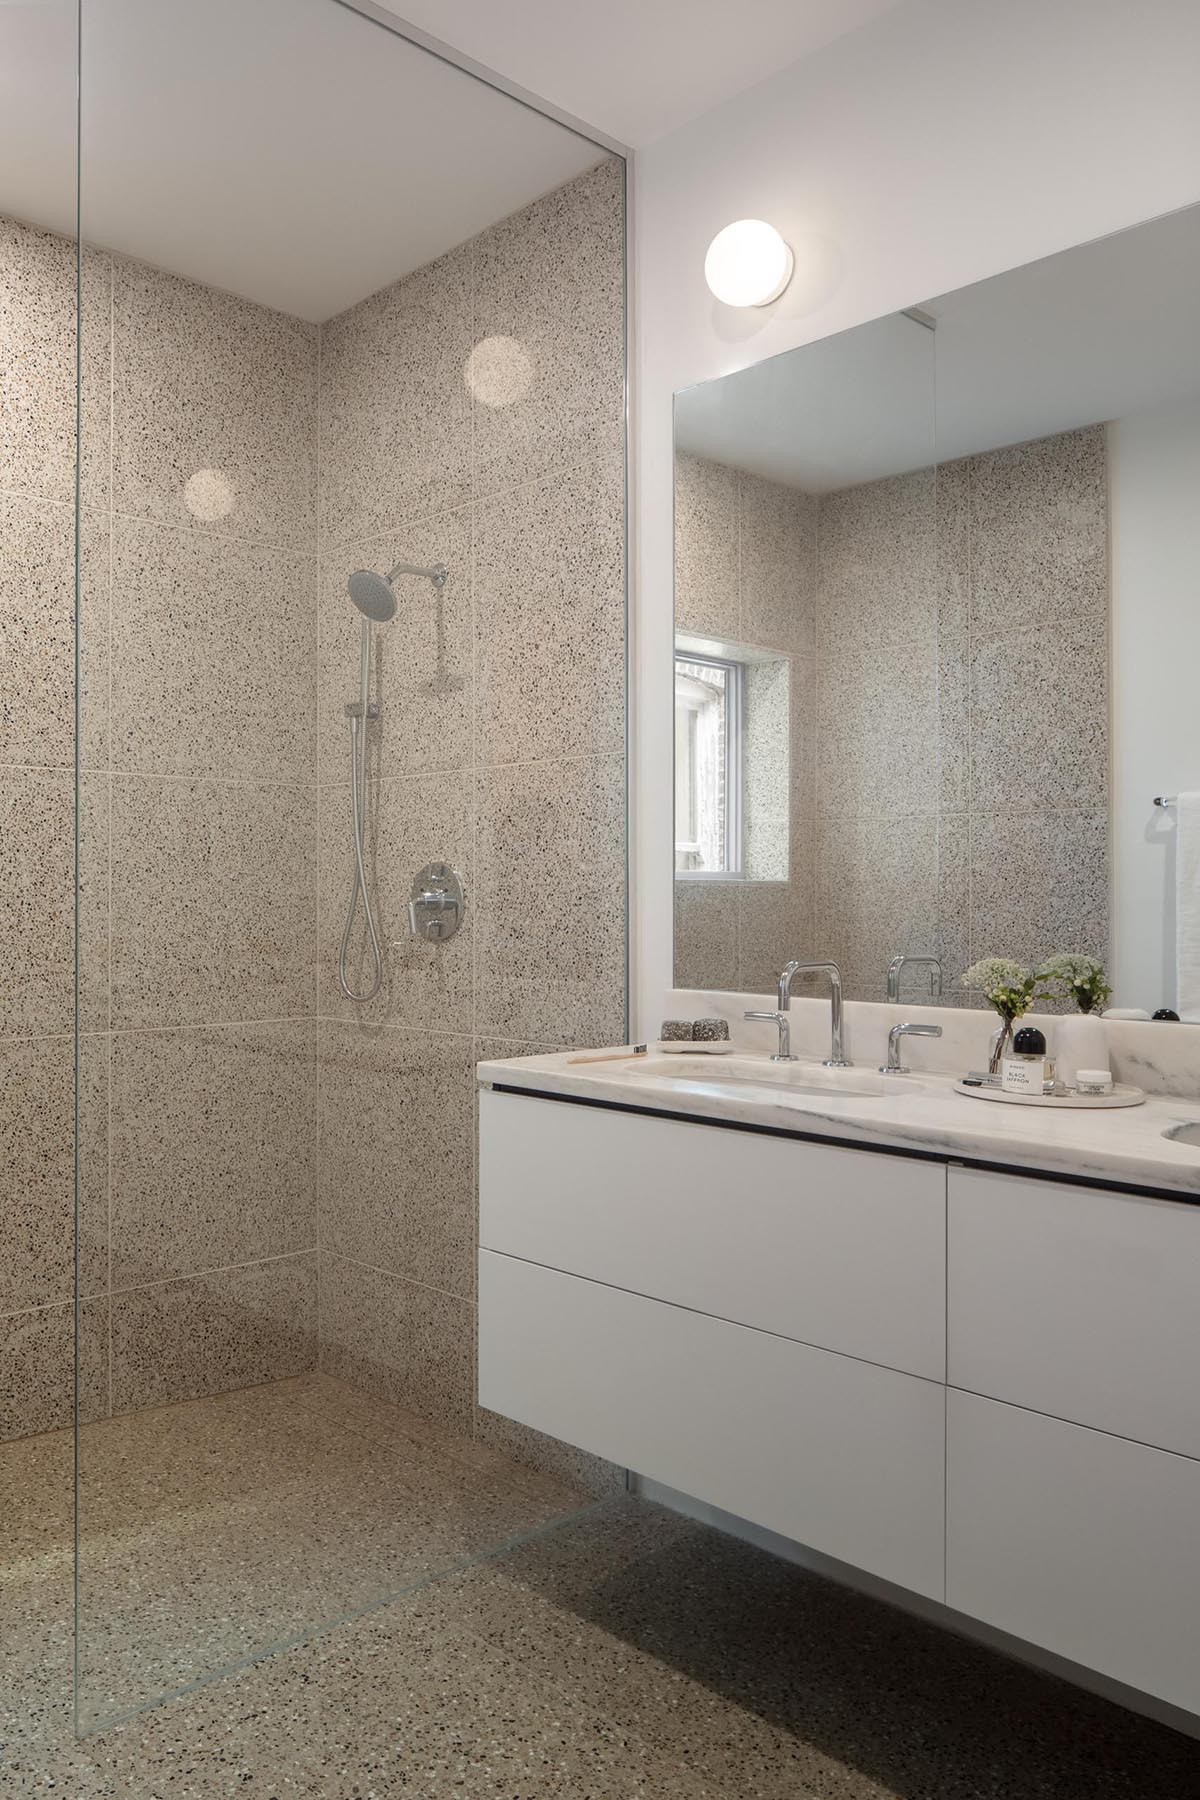 This modern bathroom features large format tiles and a white vanity.